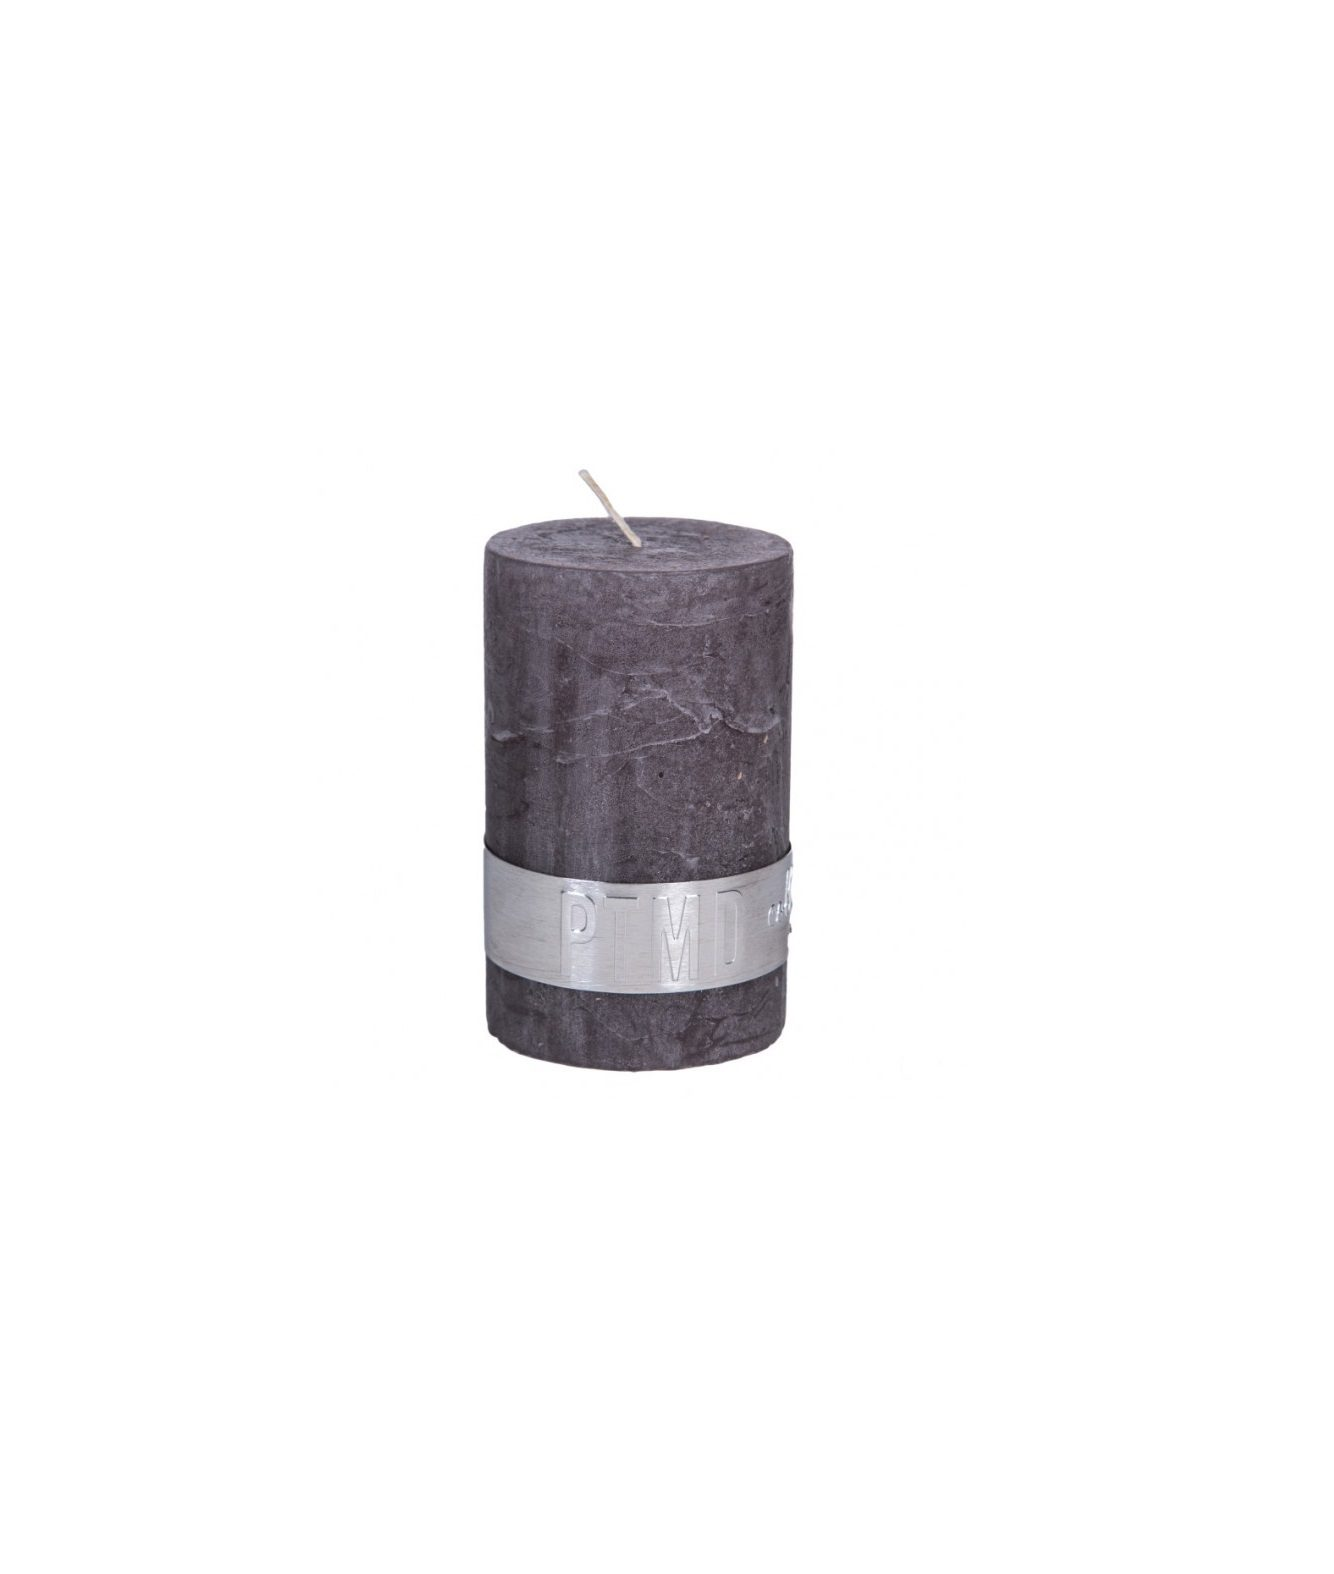 Rustic Swish Grey Pillar Candle 5 X 8 Cm Ptmd Collection 67A